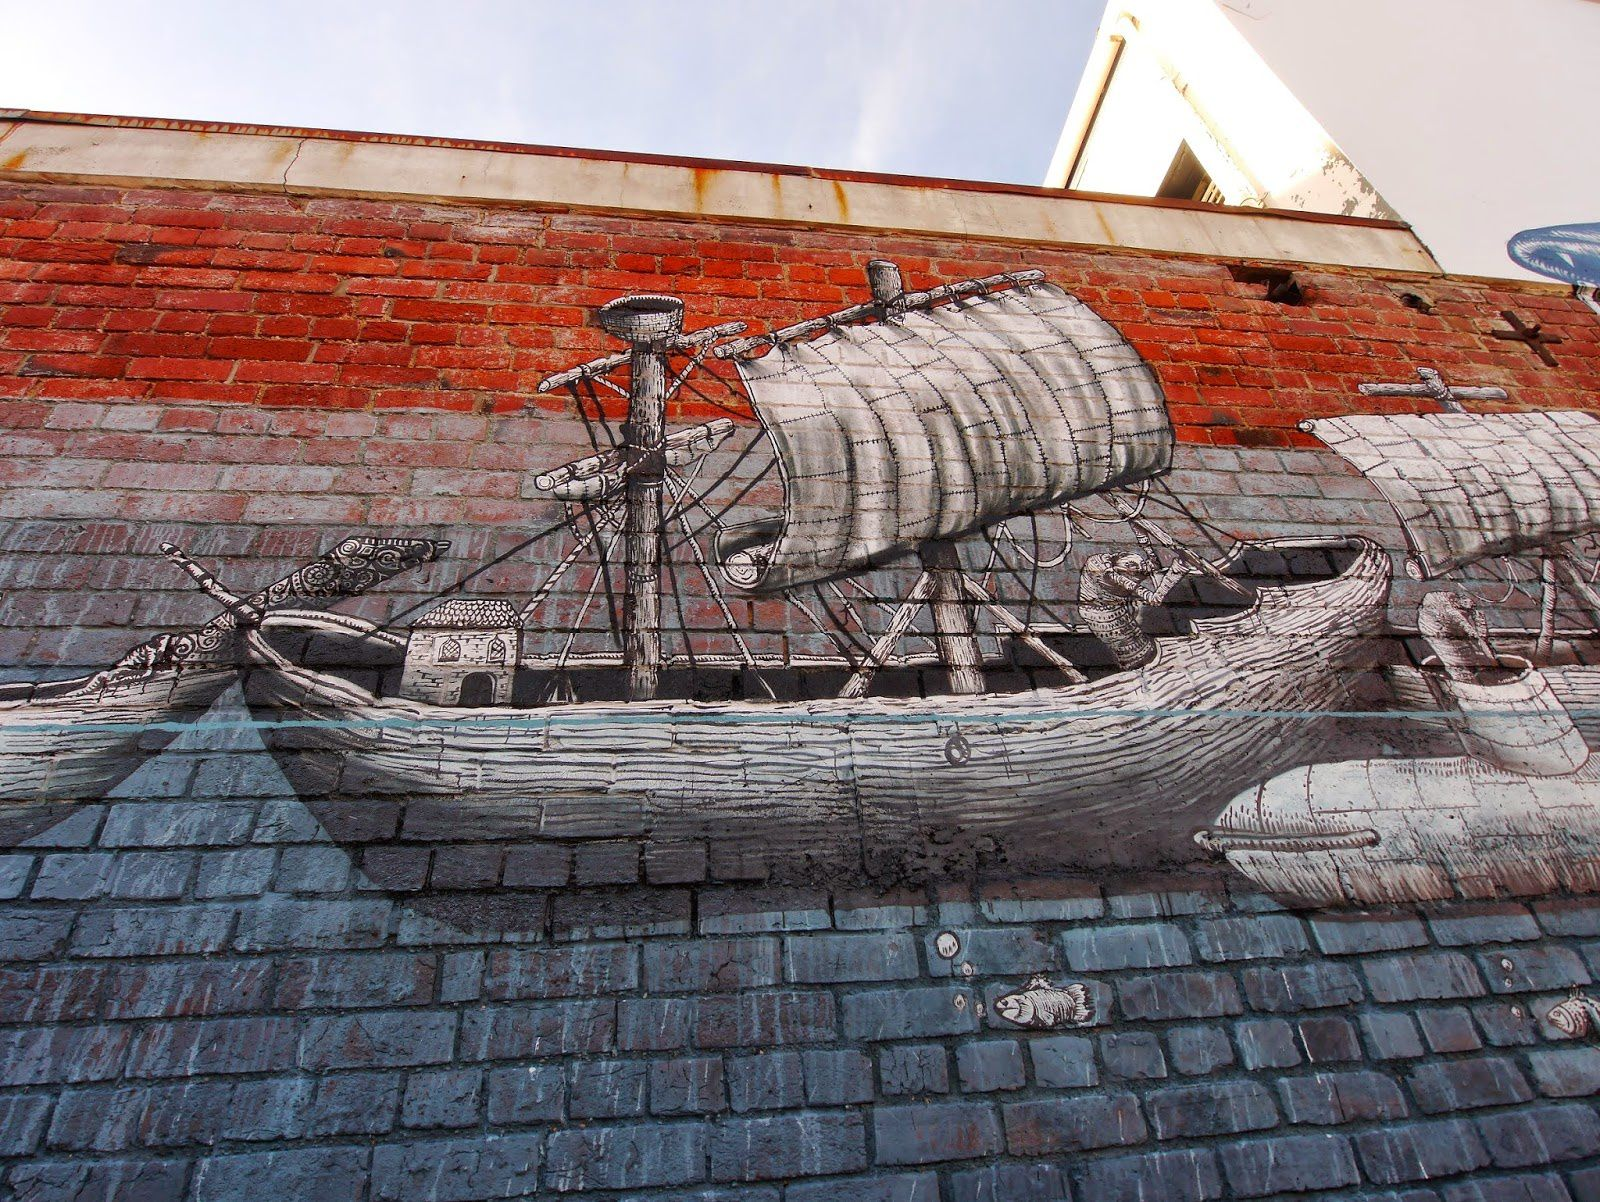 Phlegm new mural in Dunnedin, New Zealand